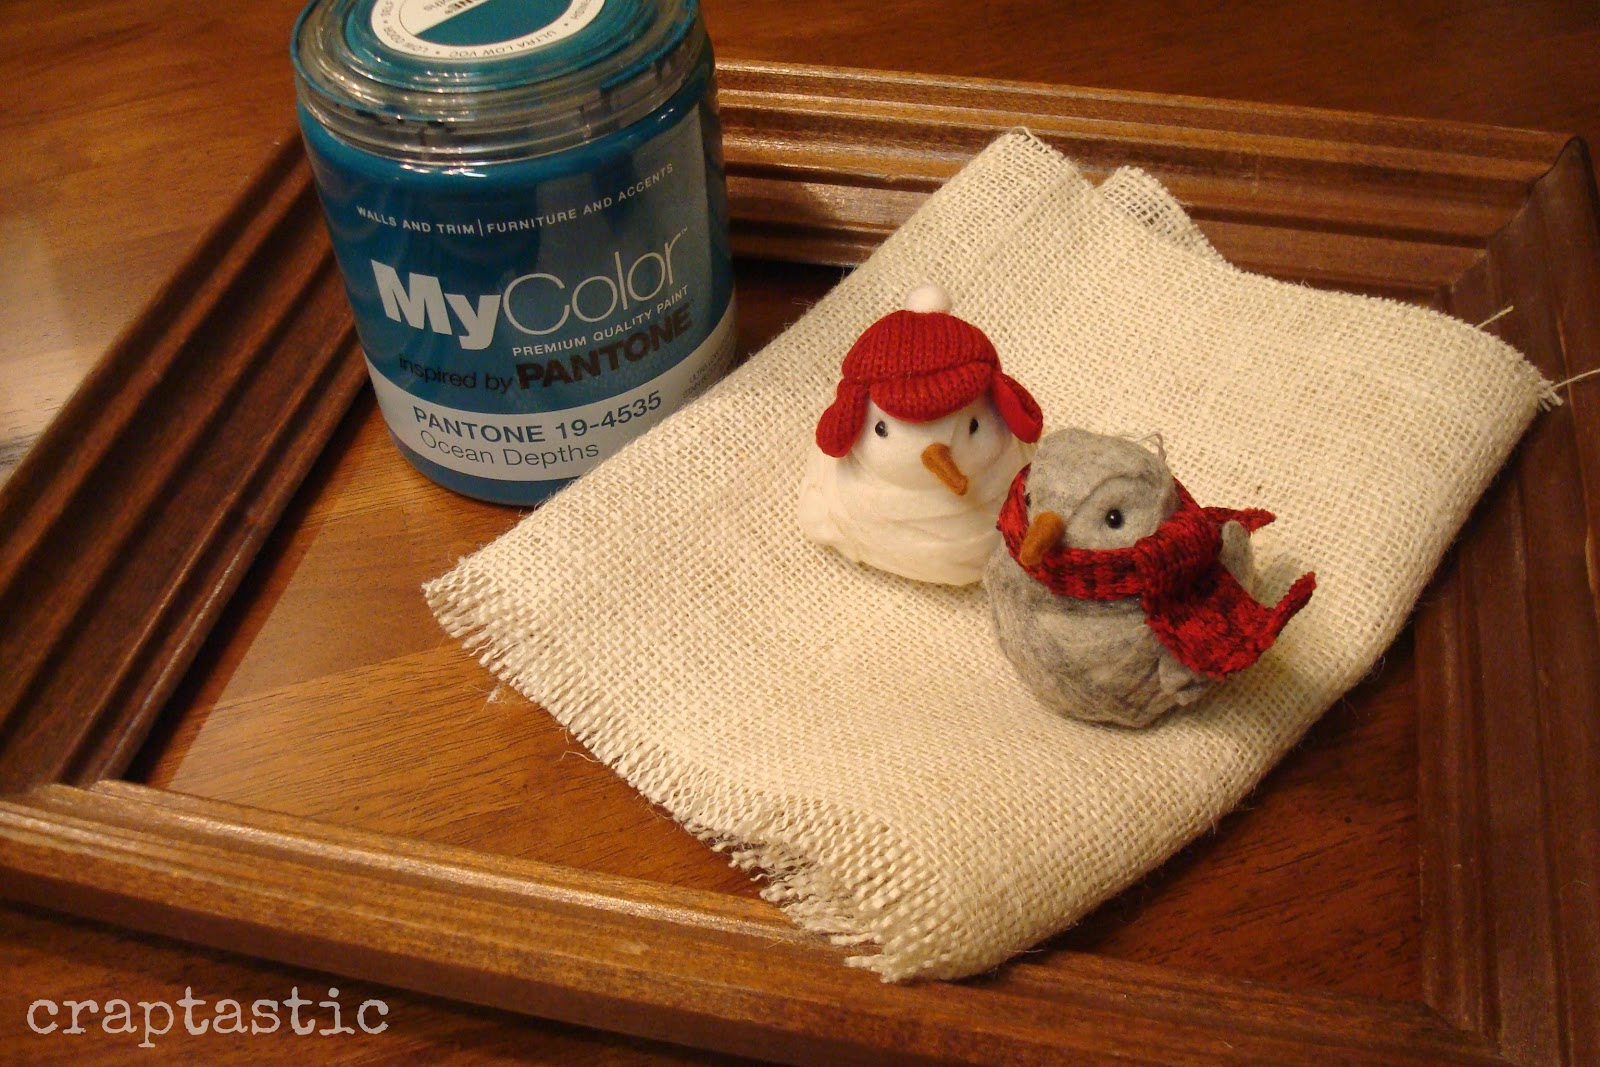 Burlap bird ornaments - I Grabbed Mycolor Inspired By Pantone Paint In Ocean Depths The Same Color I Used On My Accessory Station Some Leftover Burlap And A Frame I Had In The